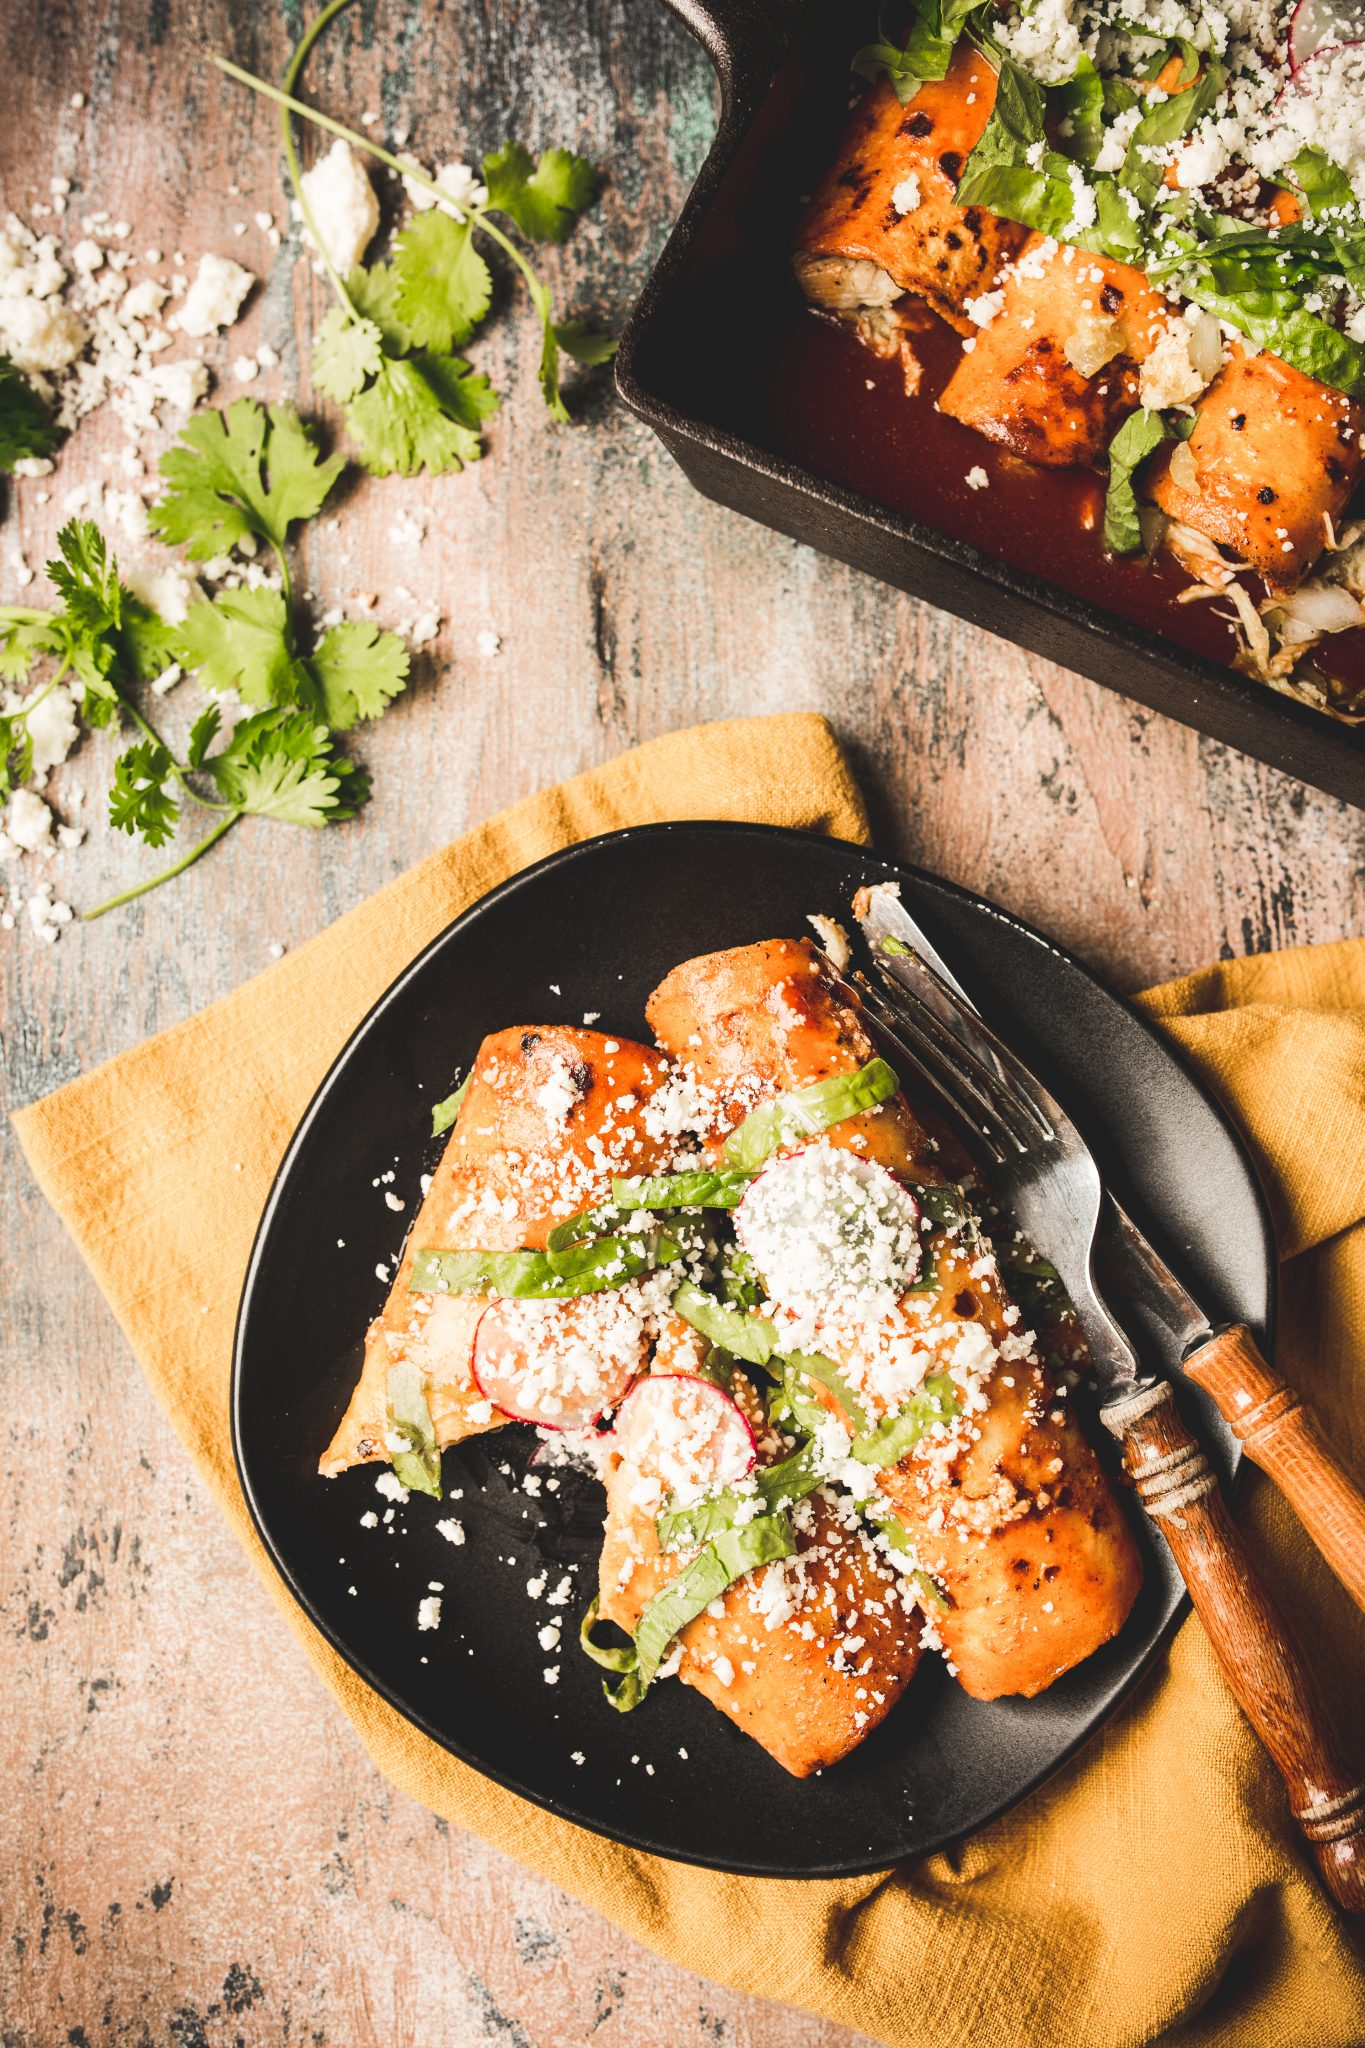 Overhead image of red chicken enchiladas on a black serving plate topped with radishes, lettuce, and cotija cheese.